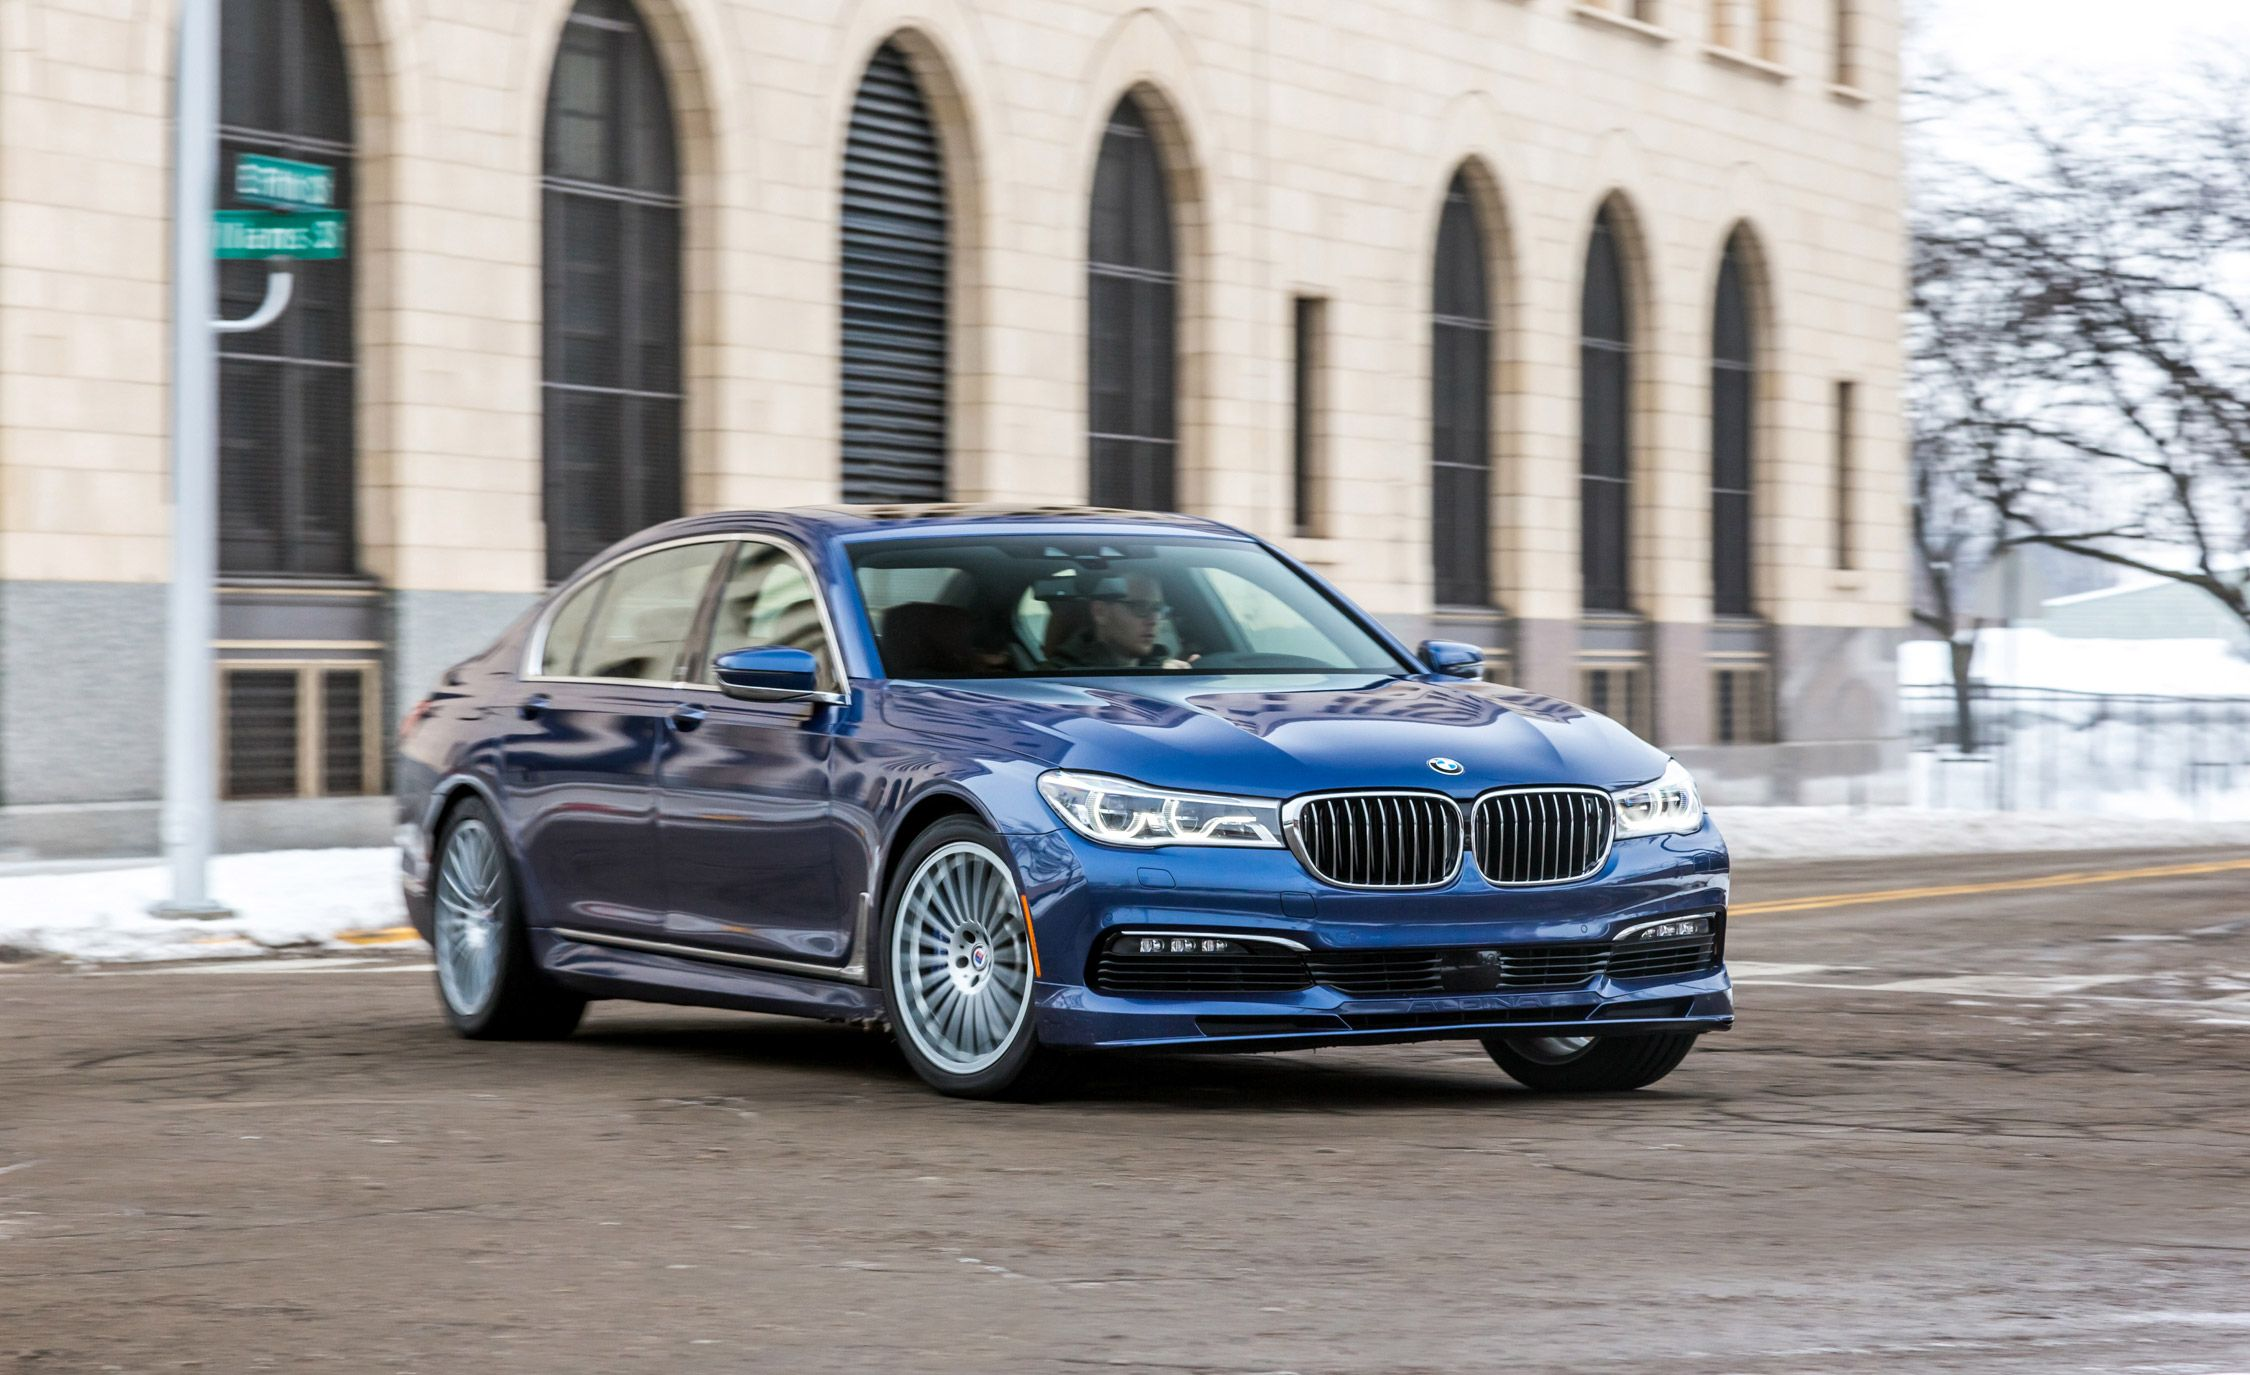 2017 BMW Alpina B7 xDrive Test | Review | Car and Driver